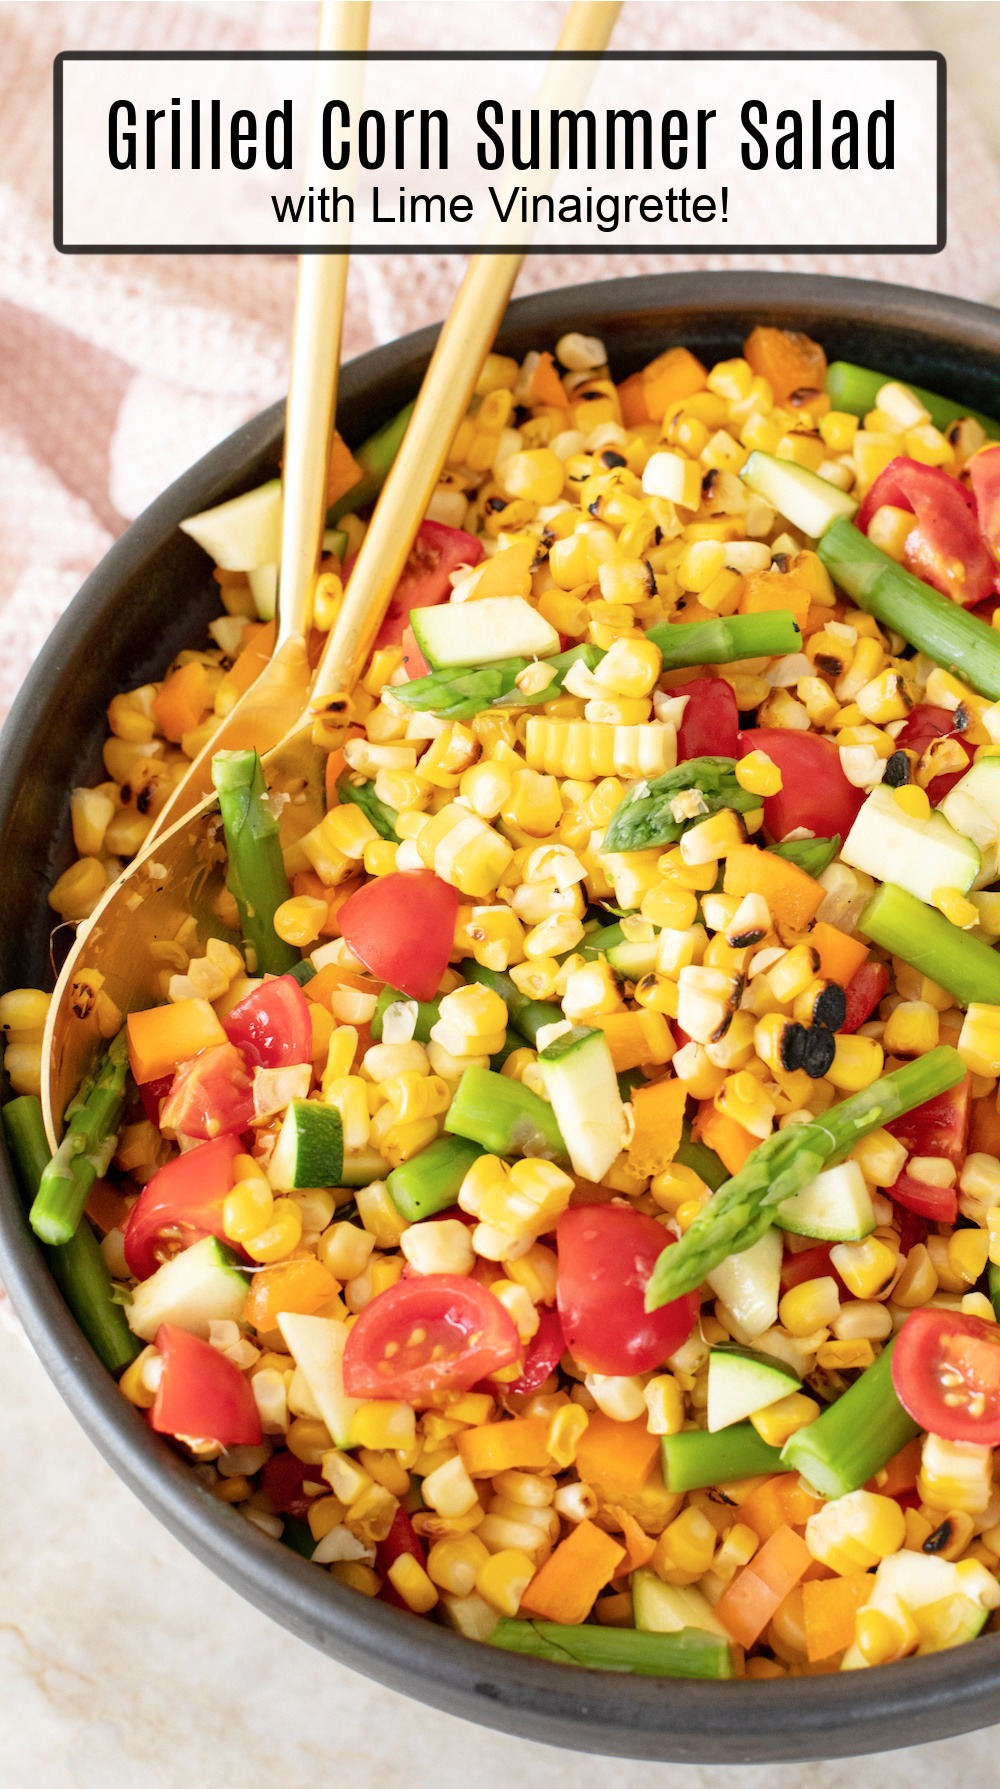 Grilled Corn Summer Salad in black bowl with gold serving spoons